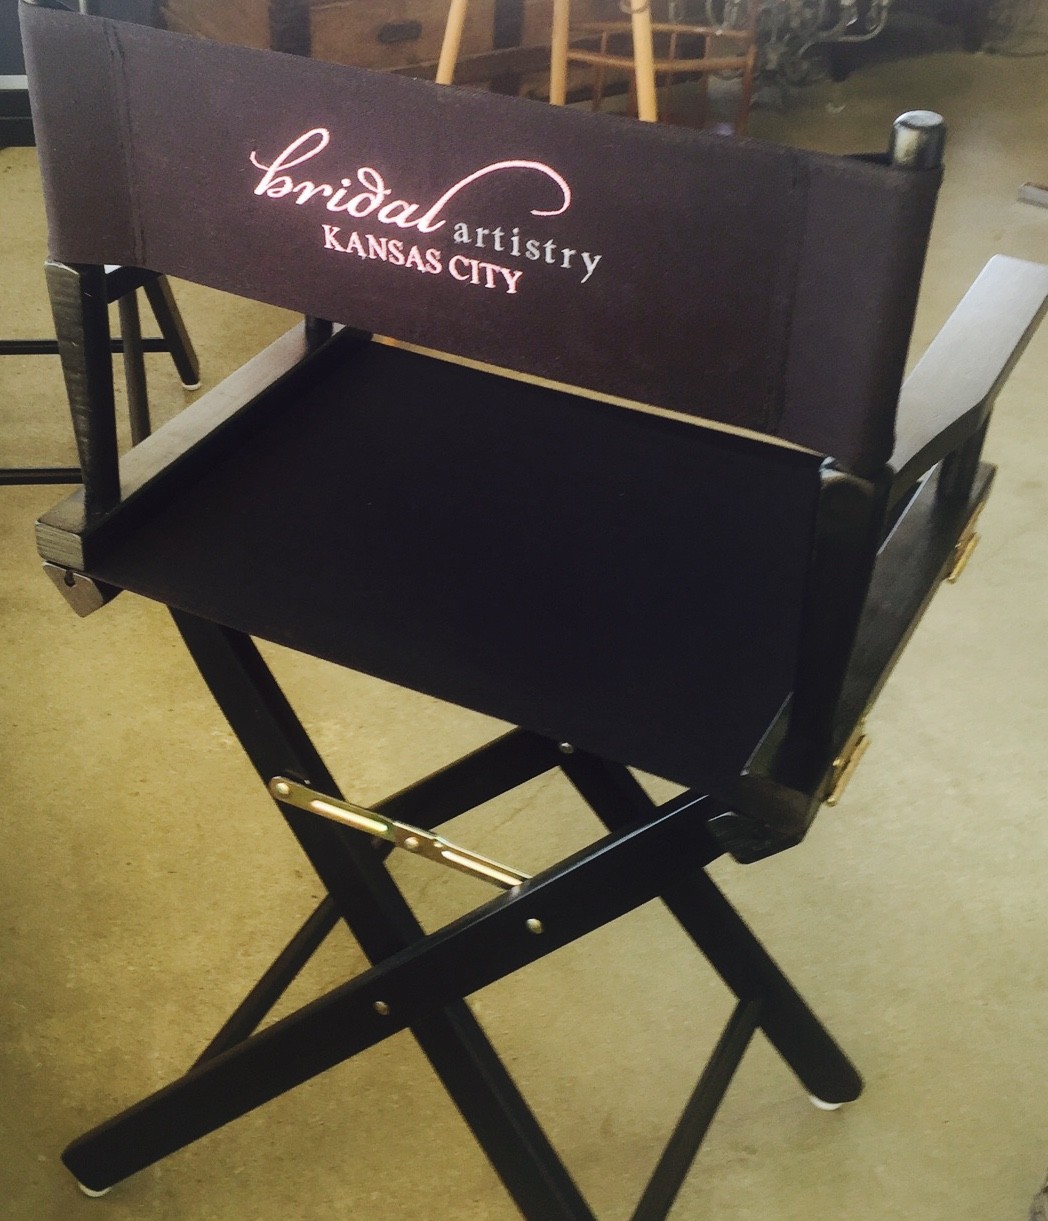 Bridal Artistry Kansas City Makeup Chair